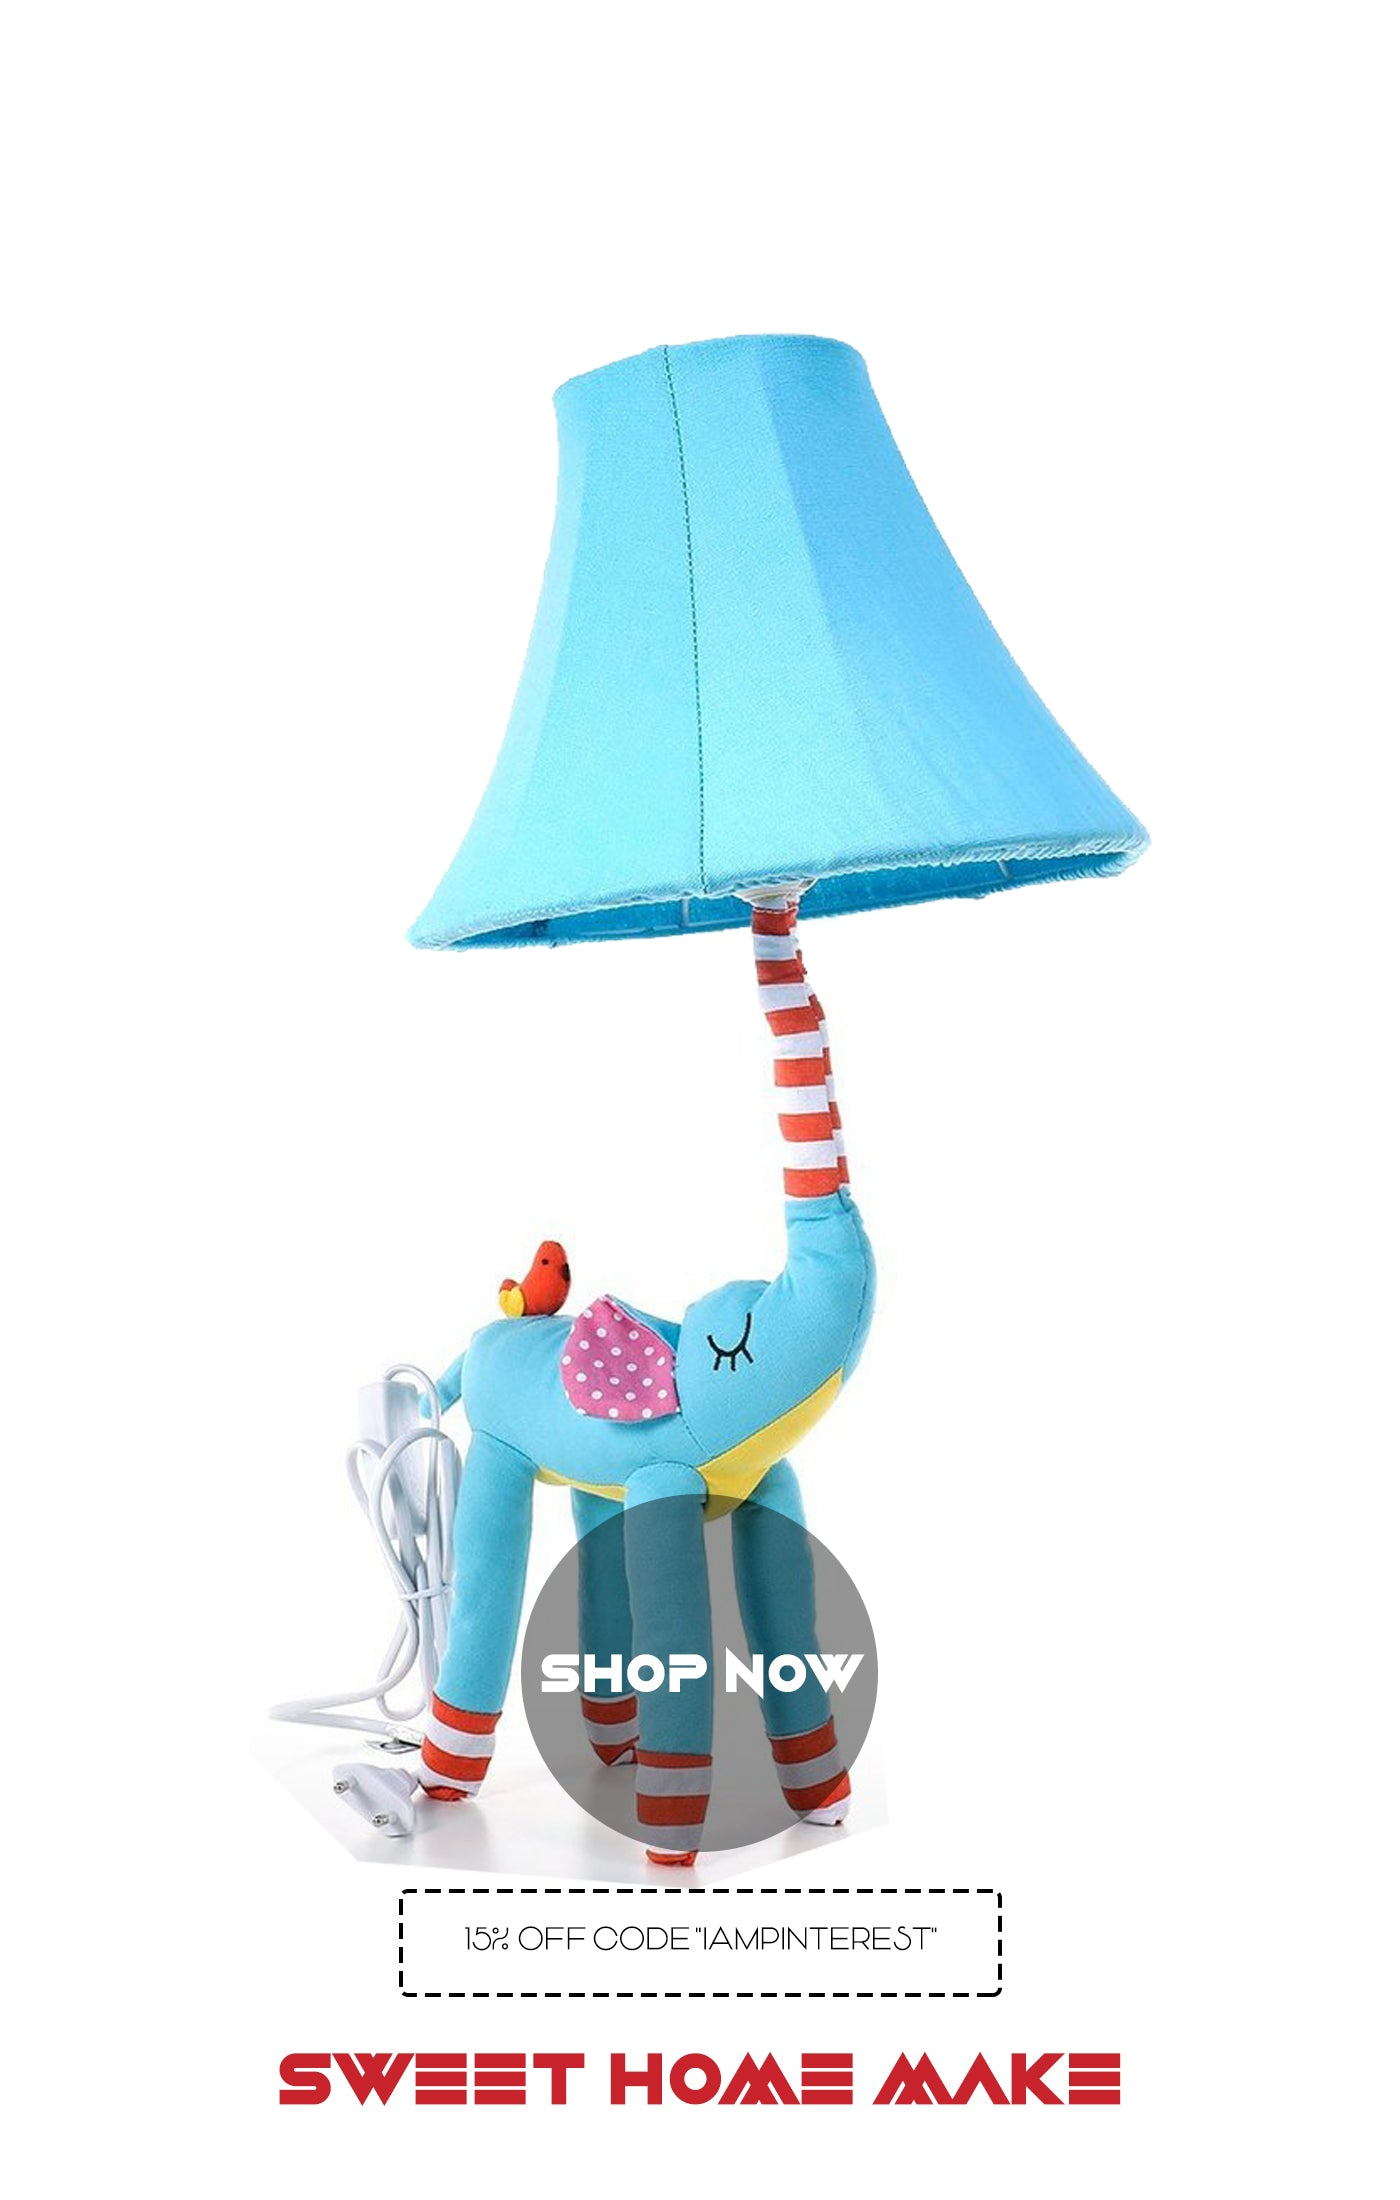 Elephant Toys For Nursery and Kids as Online Store